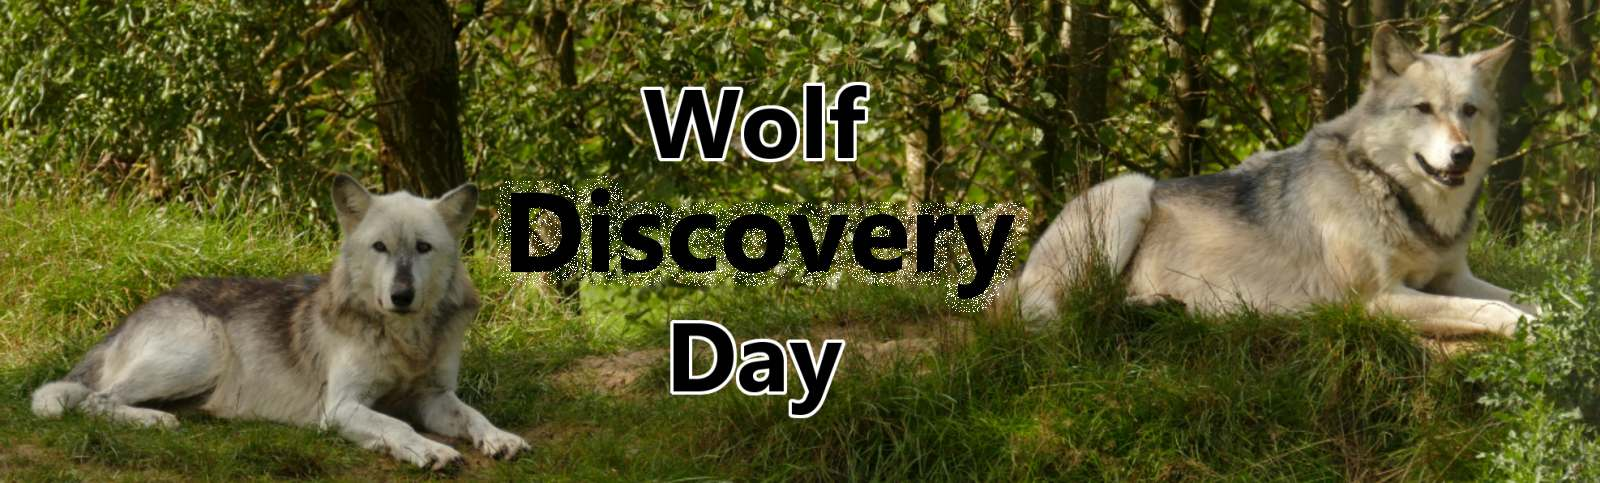 Wolf Discovery Day